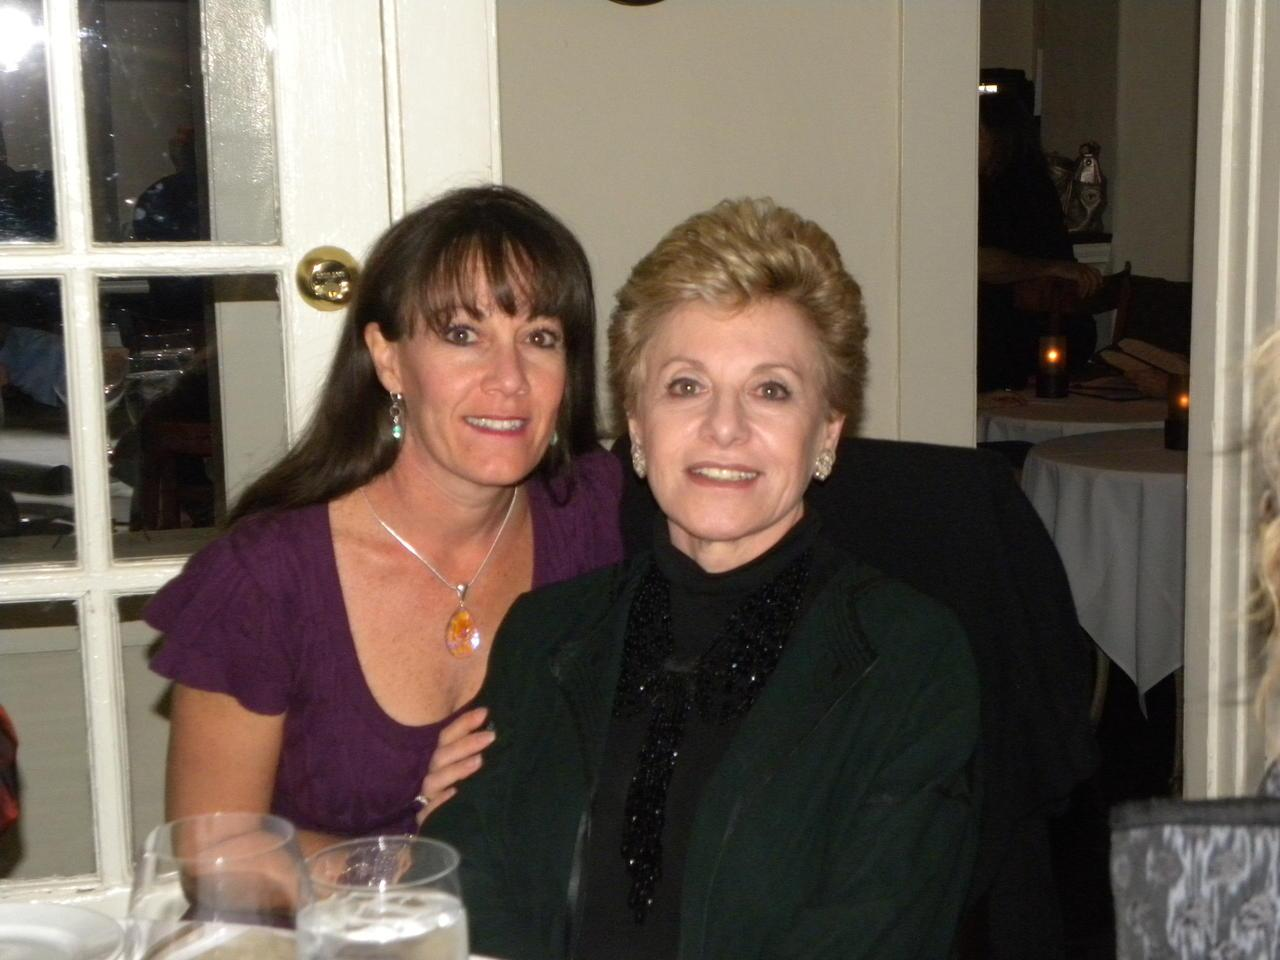 Suzy and Rani Garfinkle, 2010